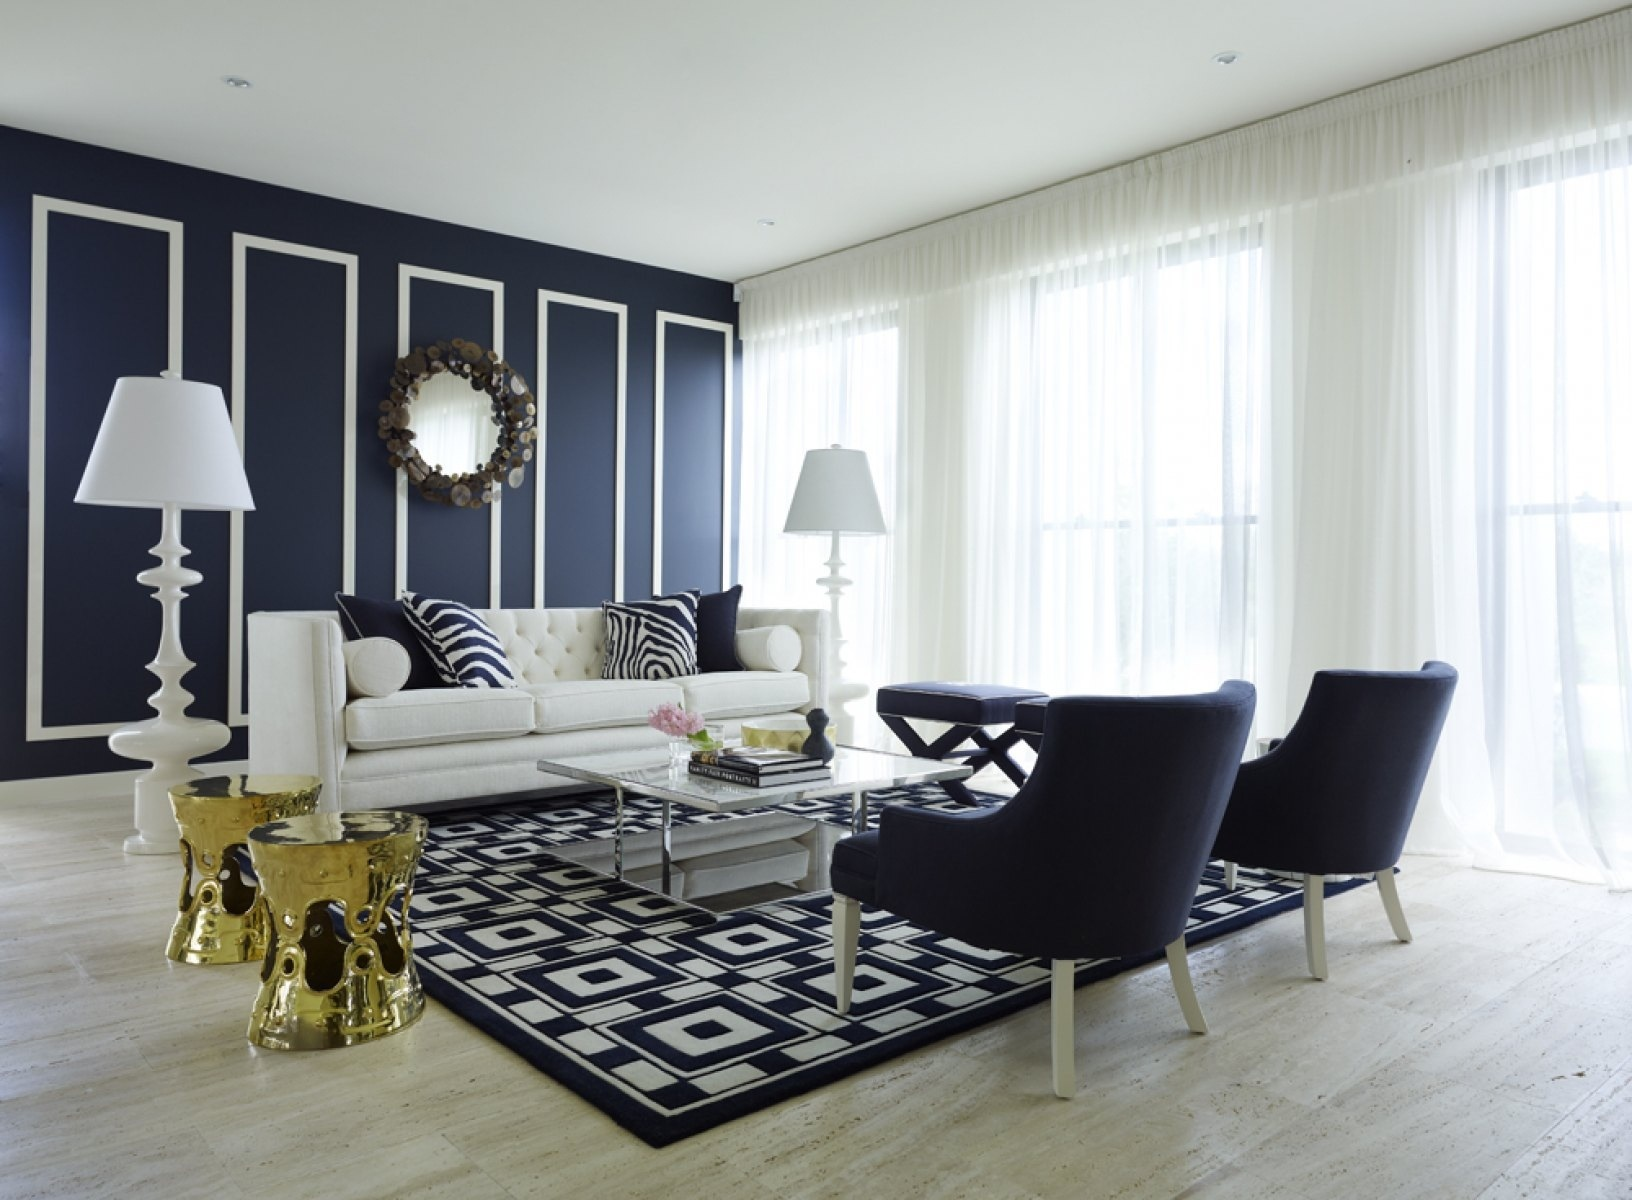 Outstanding Living Rooms by Greg Natale to Inspire your Home living rooms by greg natale Outstanding Living Rooms by Greg Natale to Inspire your Home Outstanding Living Rooms by Greg Natale to Inspire your Home2